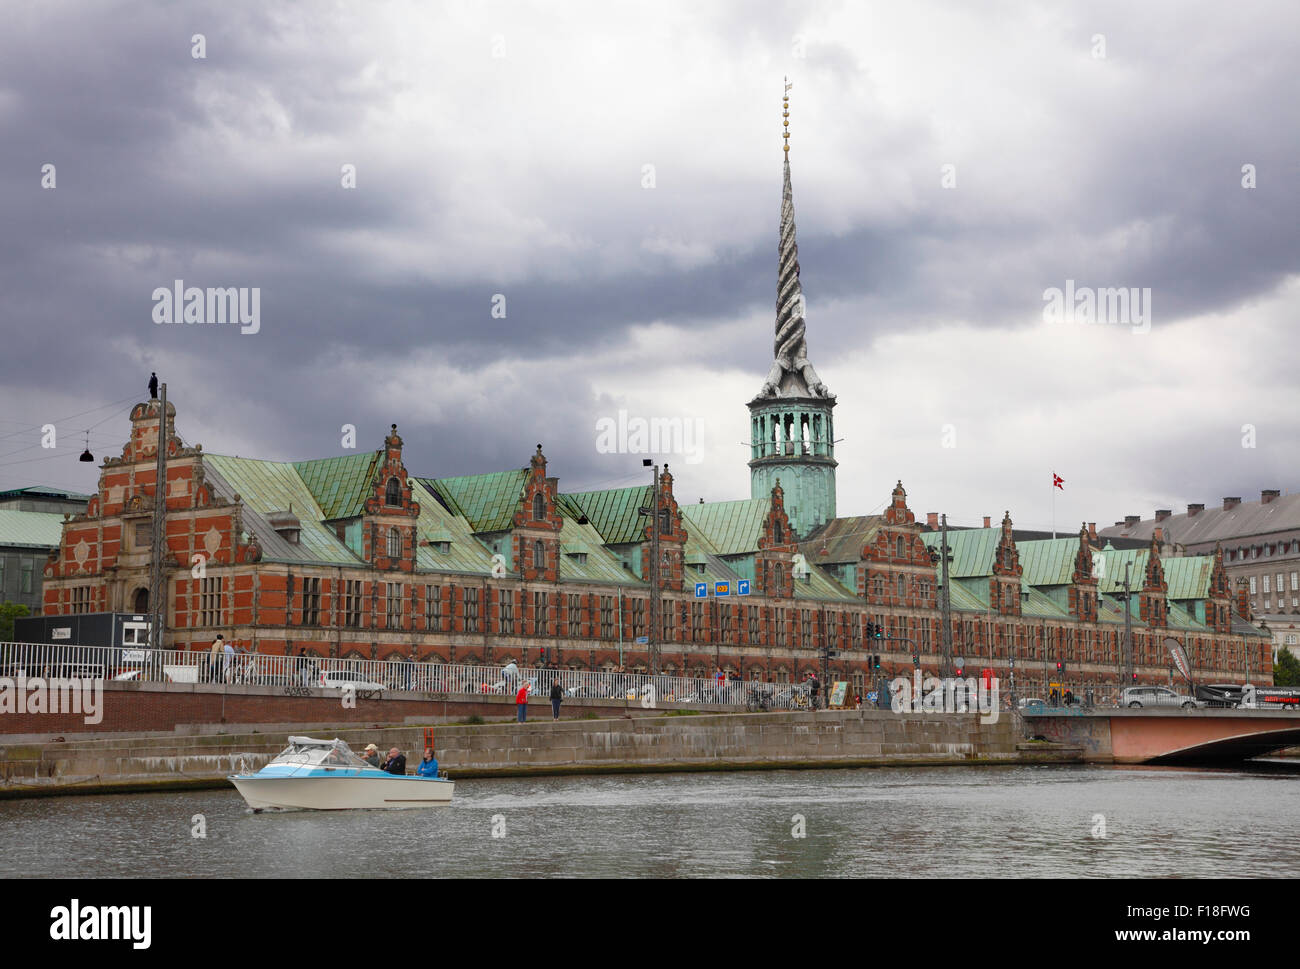 View of the Old Stock Exchange in renaissance style and tower of twisted dragon tails on a summer day with threatening - Stock Image